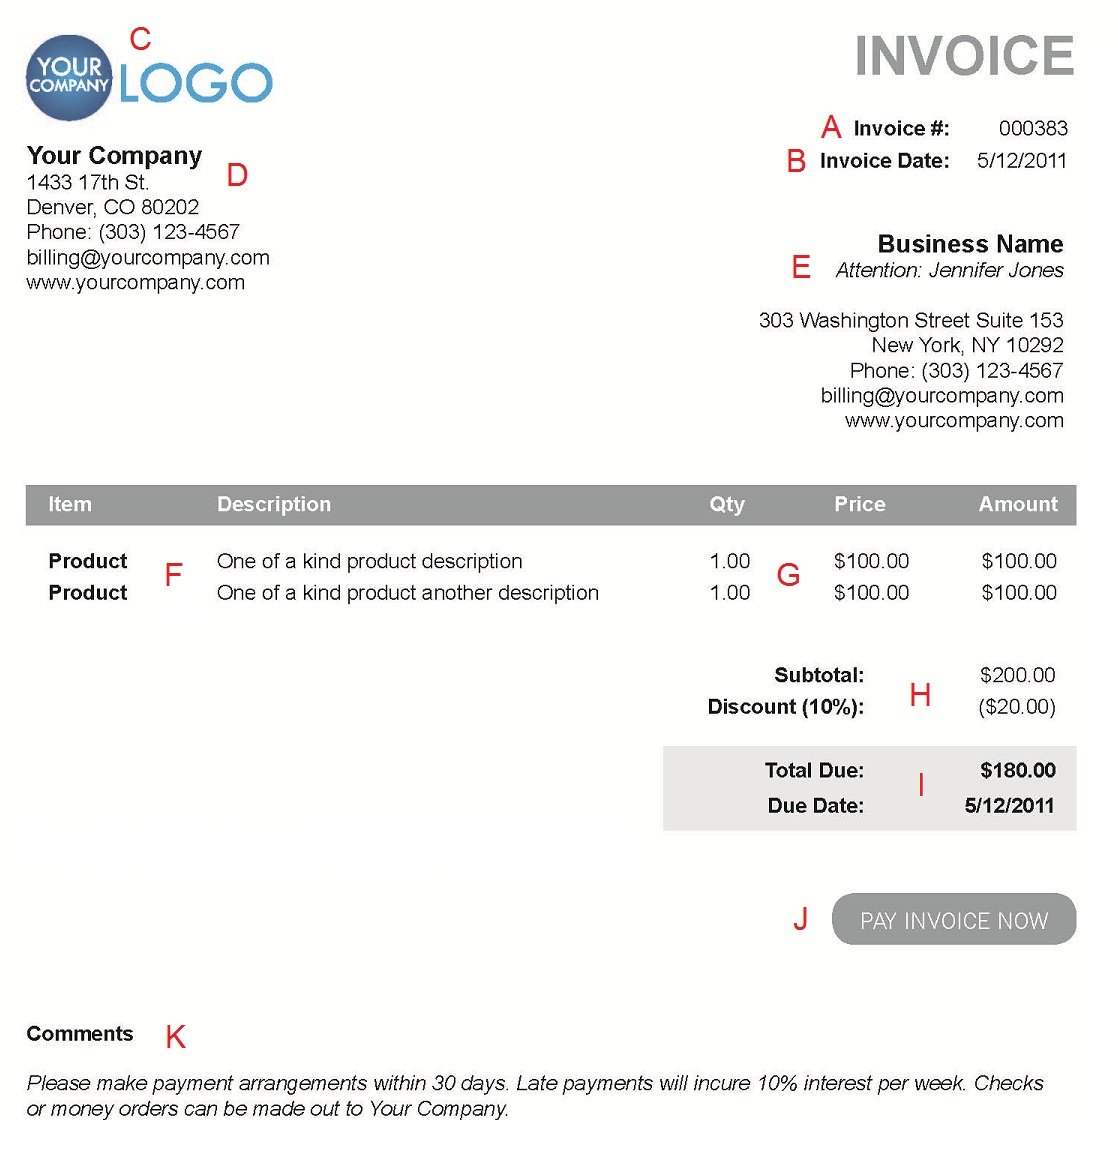 Amatospizzaus  Pleasing The  Different Sections Of An Electronic Payment Invoice With Foxy A  With Alluring Aliexpress Invoice Also Invoice Template For Contractors In Addition Processing Invoices For Payment And Discount Invoicing As Well As Best Free Invoicing Additionally Invoice And Packing List From Paysimplecom With Amatospizzaus  Foxy The  Different Sections Of An Electronic Payment Invoice With Alluring A  And Pleasing Aliexpress Invoice Also Invoice Template For Contractors In Addition Processing Invoices For Payment From Paysimplecom